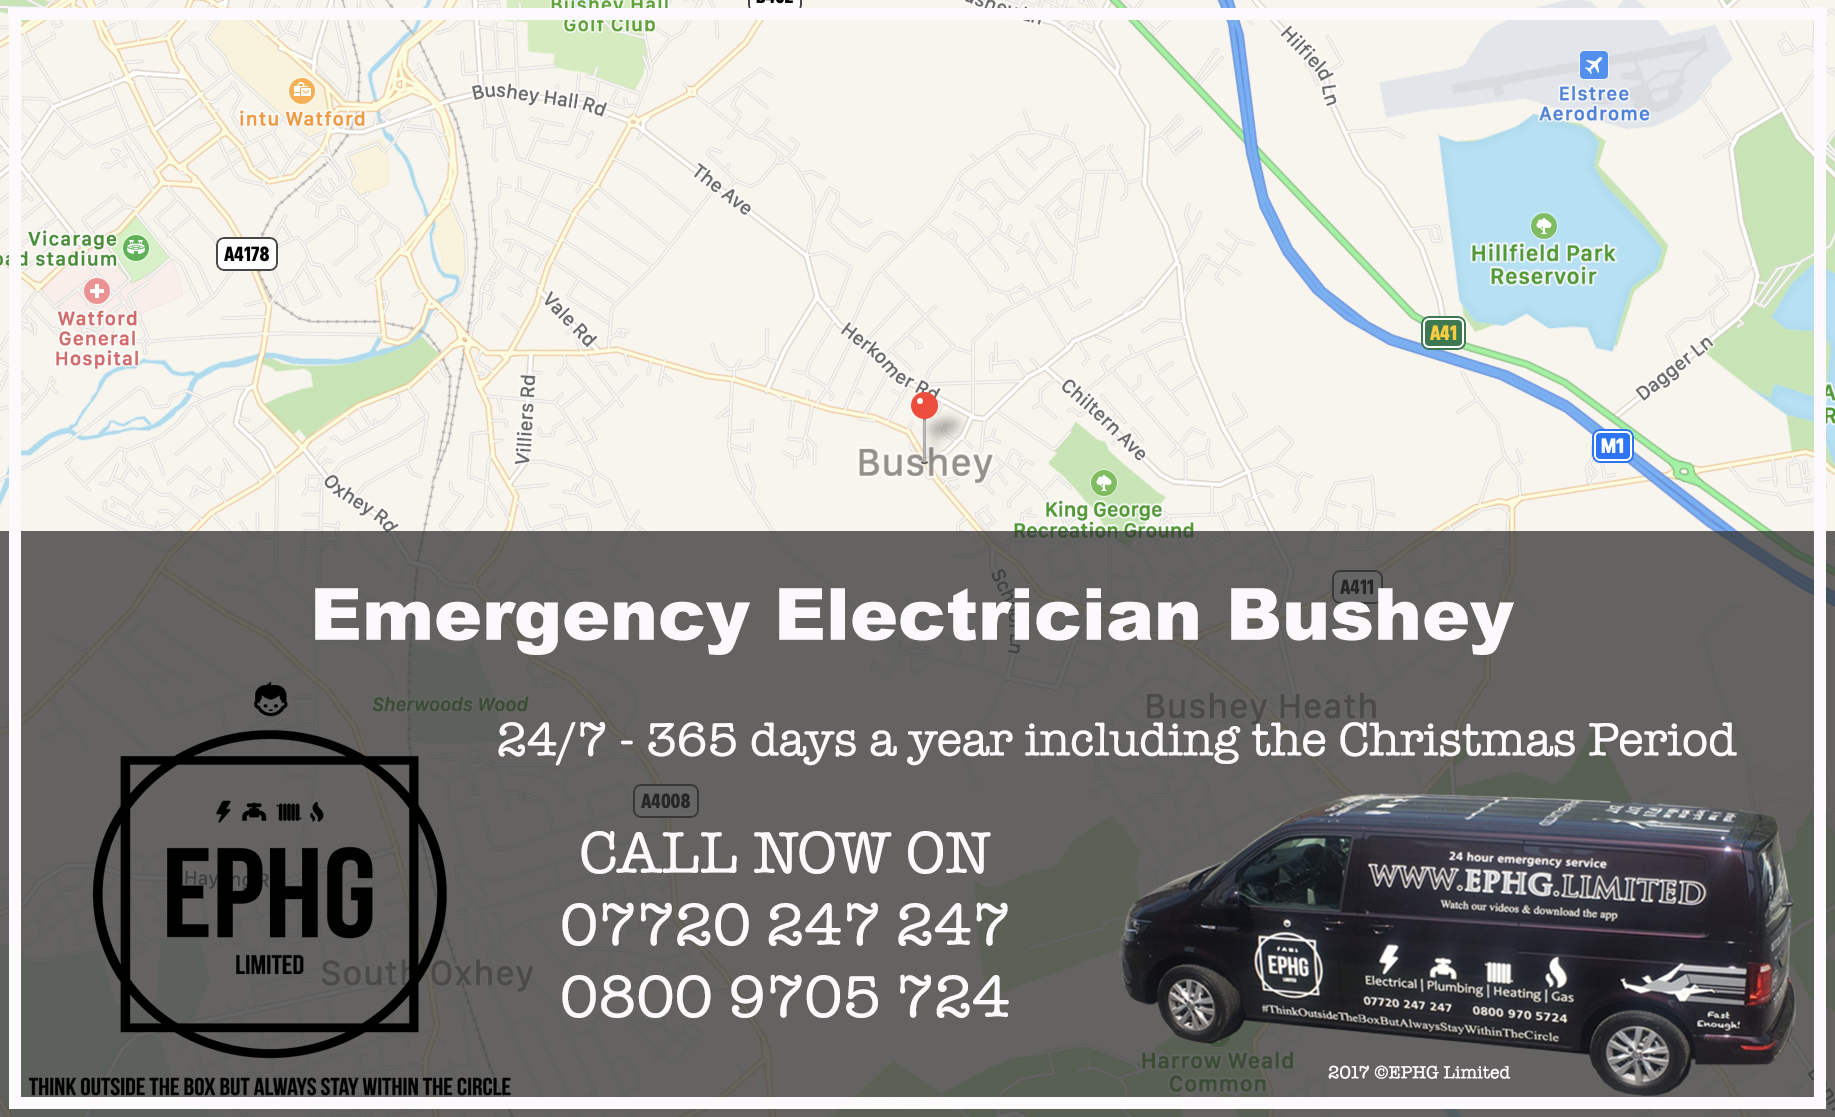 Emergency Electrician Bushey